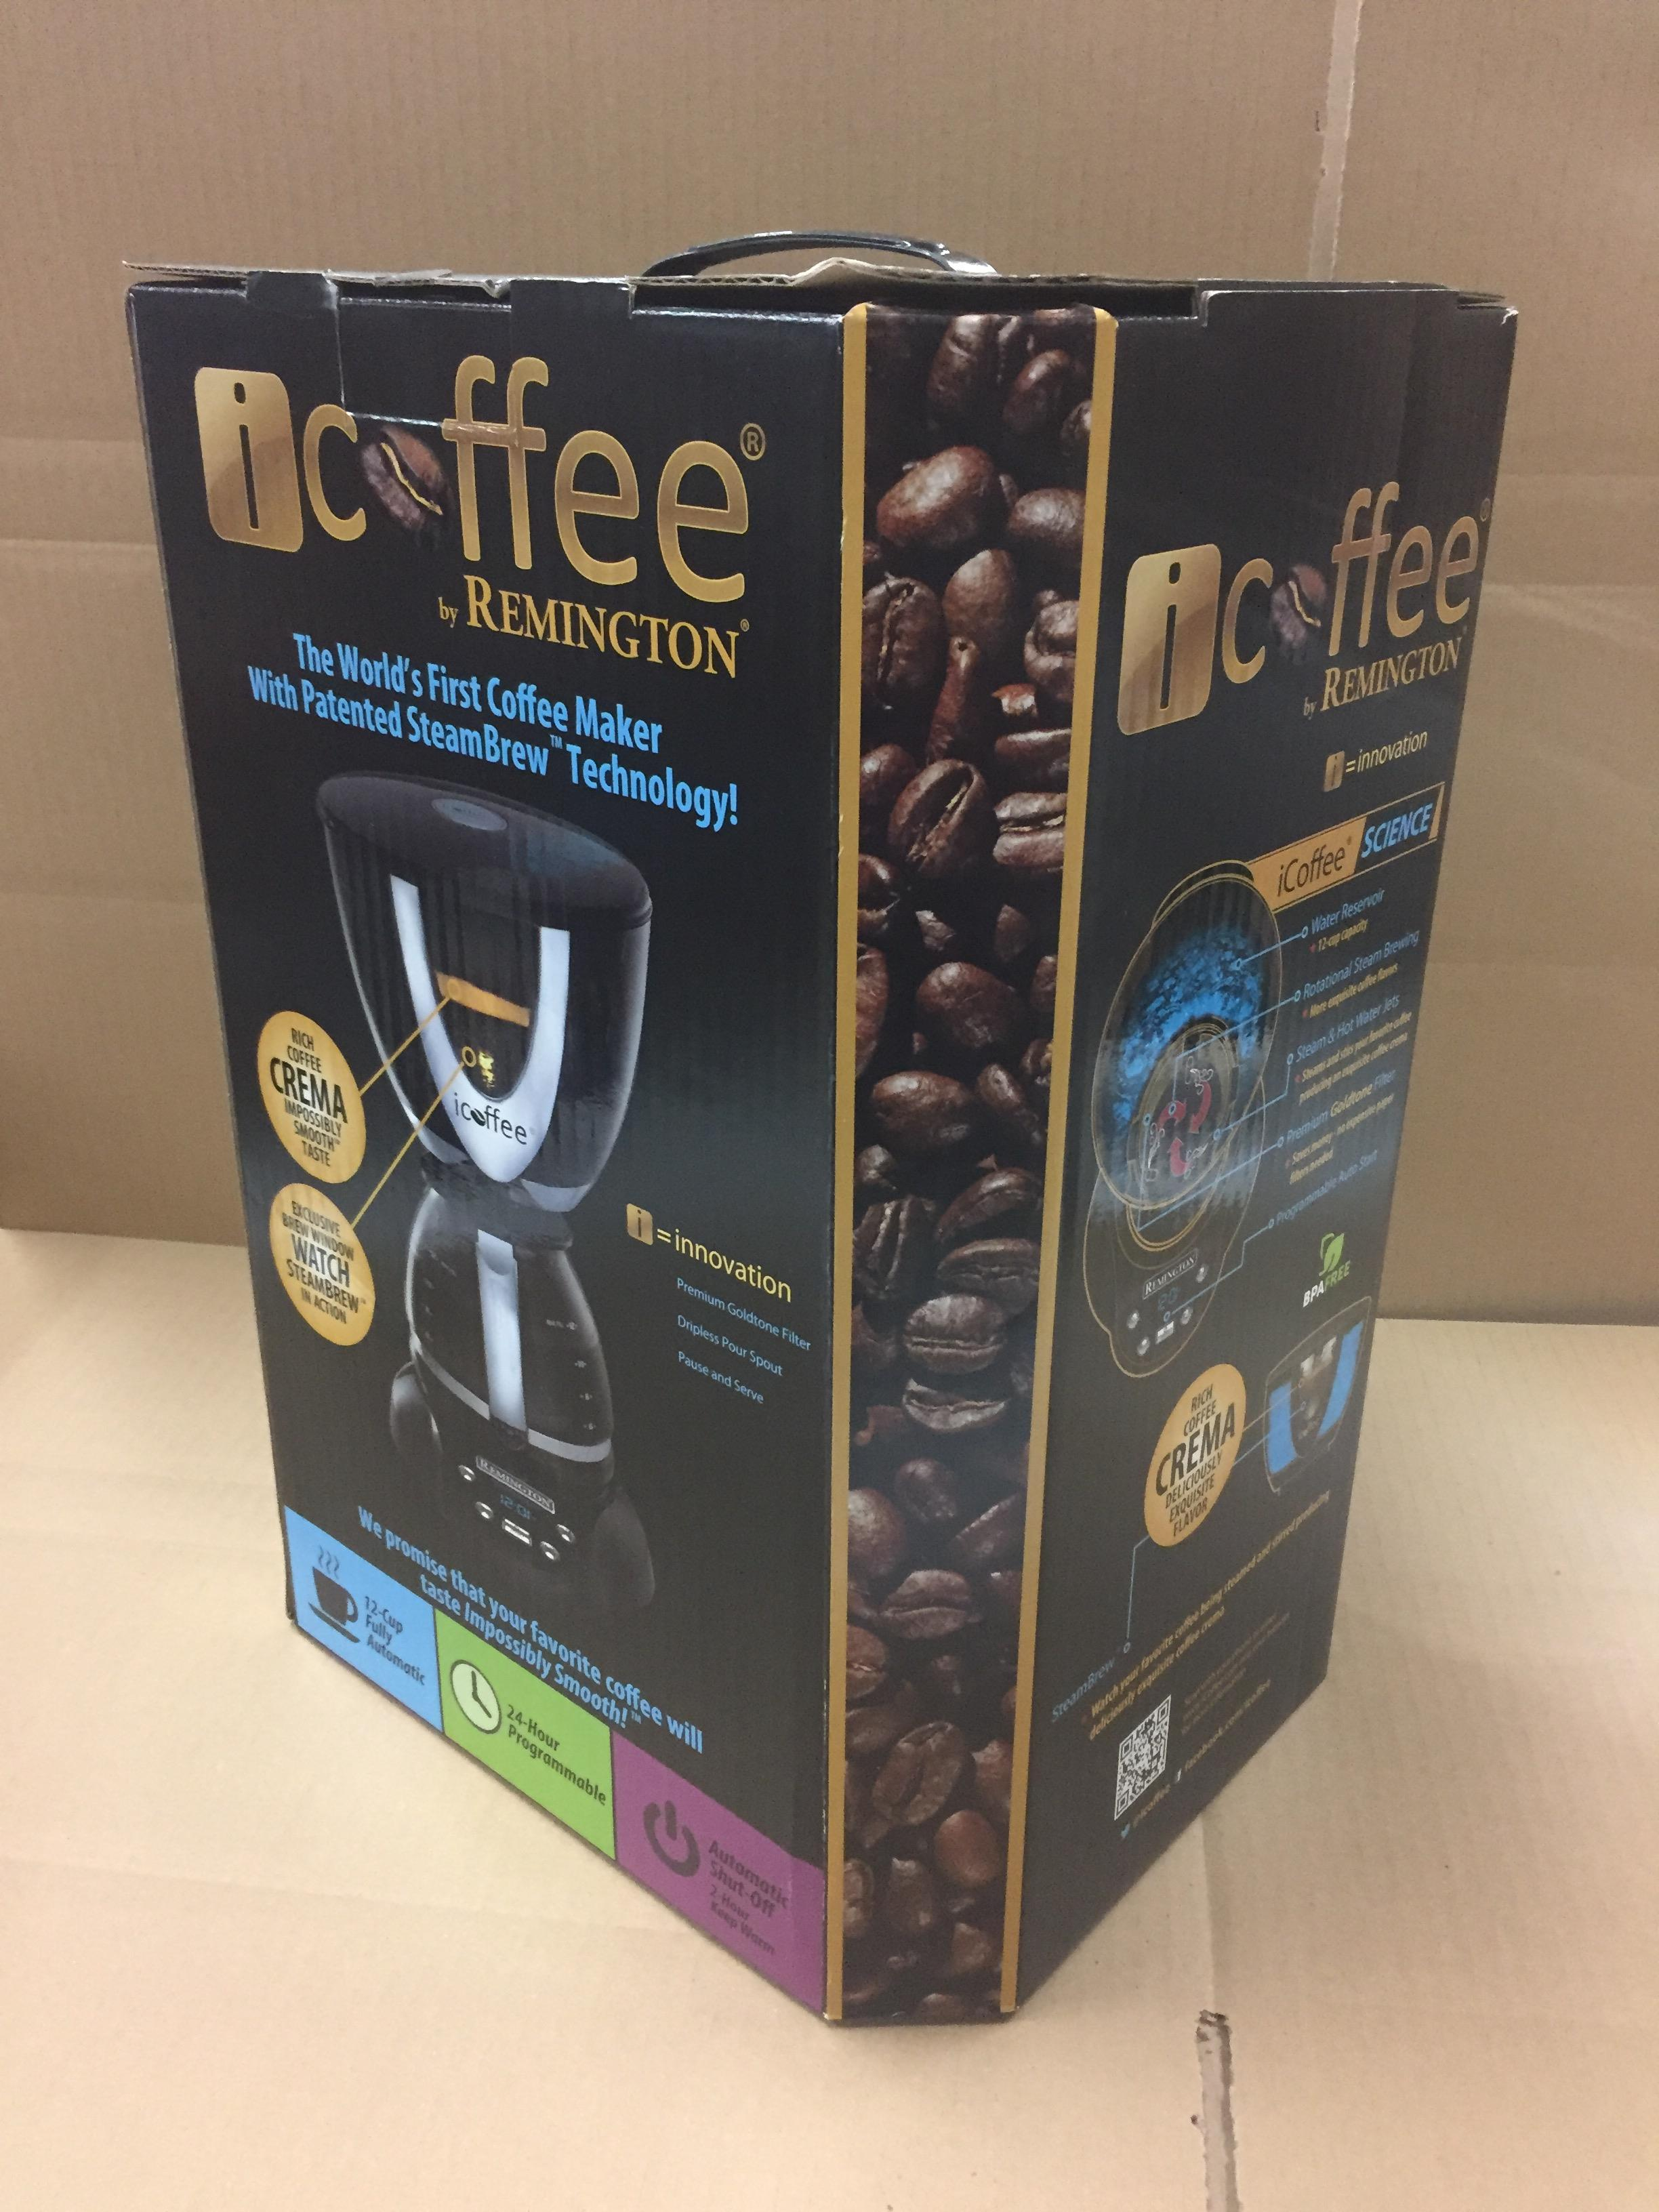 iCOFFEE REMINGTON COFFEE MAKER (BIDDING IS PER PACKAGE, MULTIPLIED BY NUMBER OF PACKAGES)